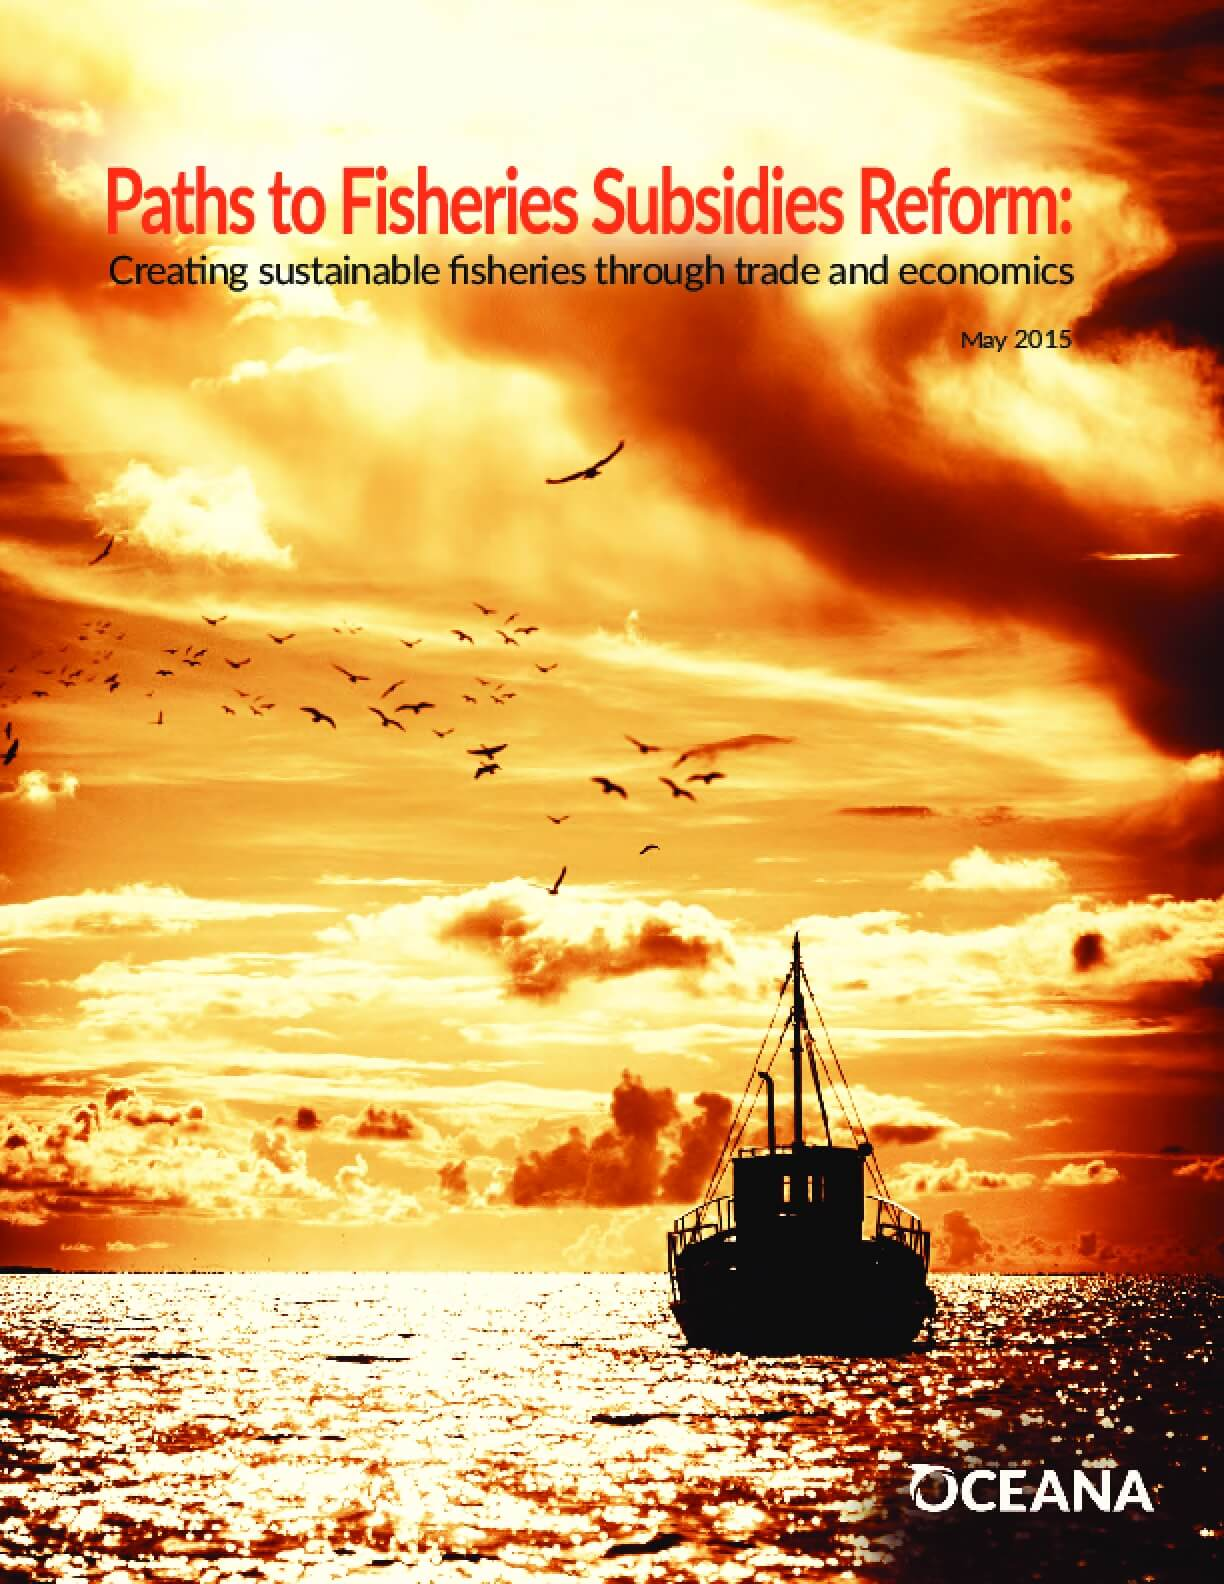 Paths to Fisheries Subsidies Reform: Creating Sustainable Fisheries Through Trade and Economics